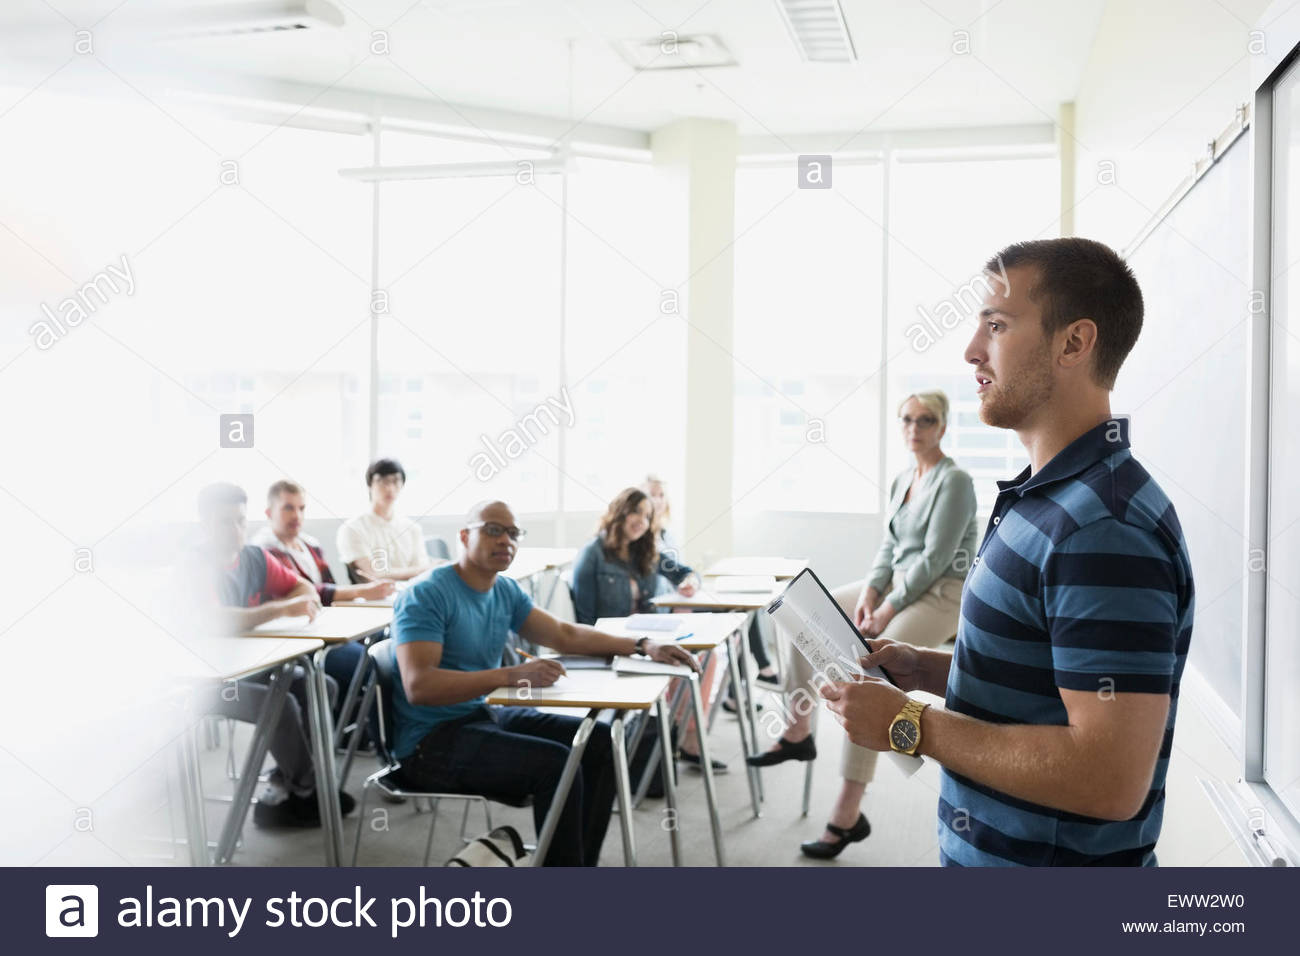 Professor and classmates watching college student give presentation - Stock Image